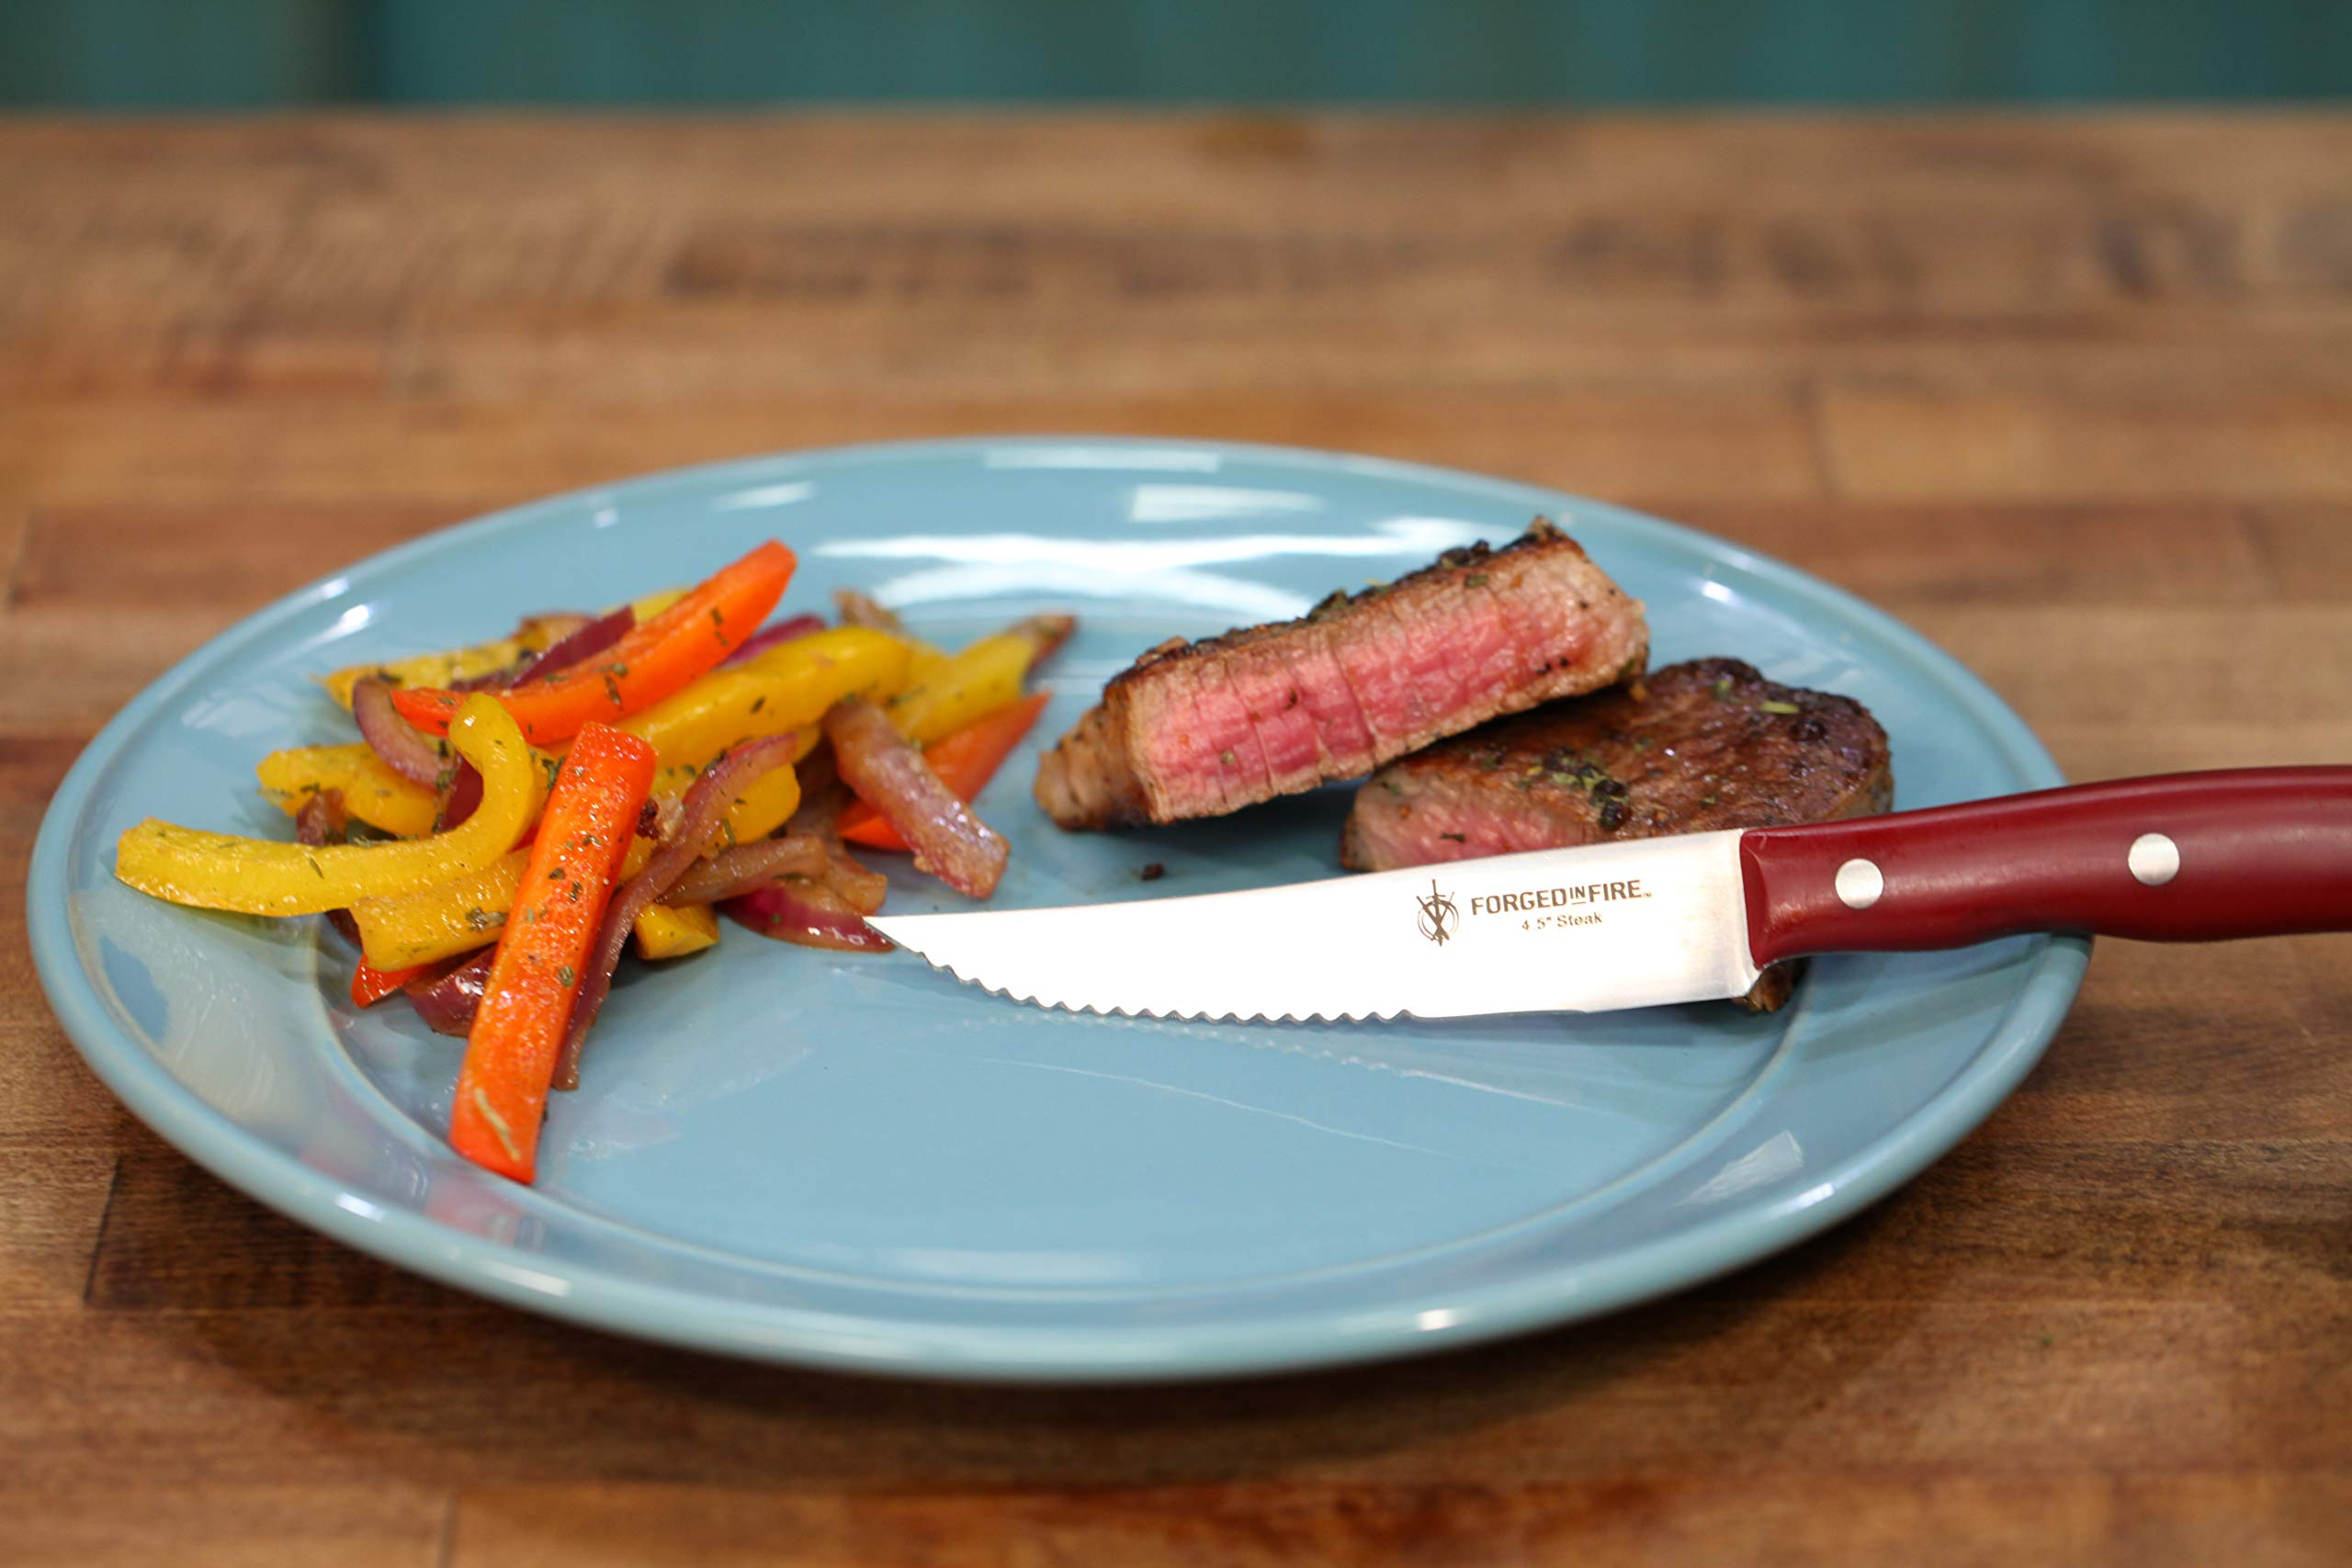 HISTORY - Forged in Fire - 4.5 Inch Steak Knife 6 - Piece Set by Forged in Fire (Image #3)